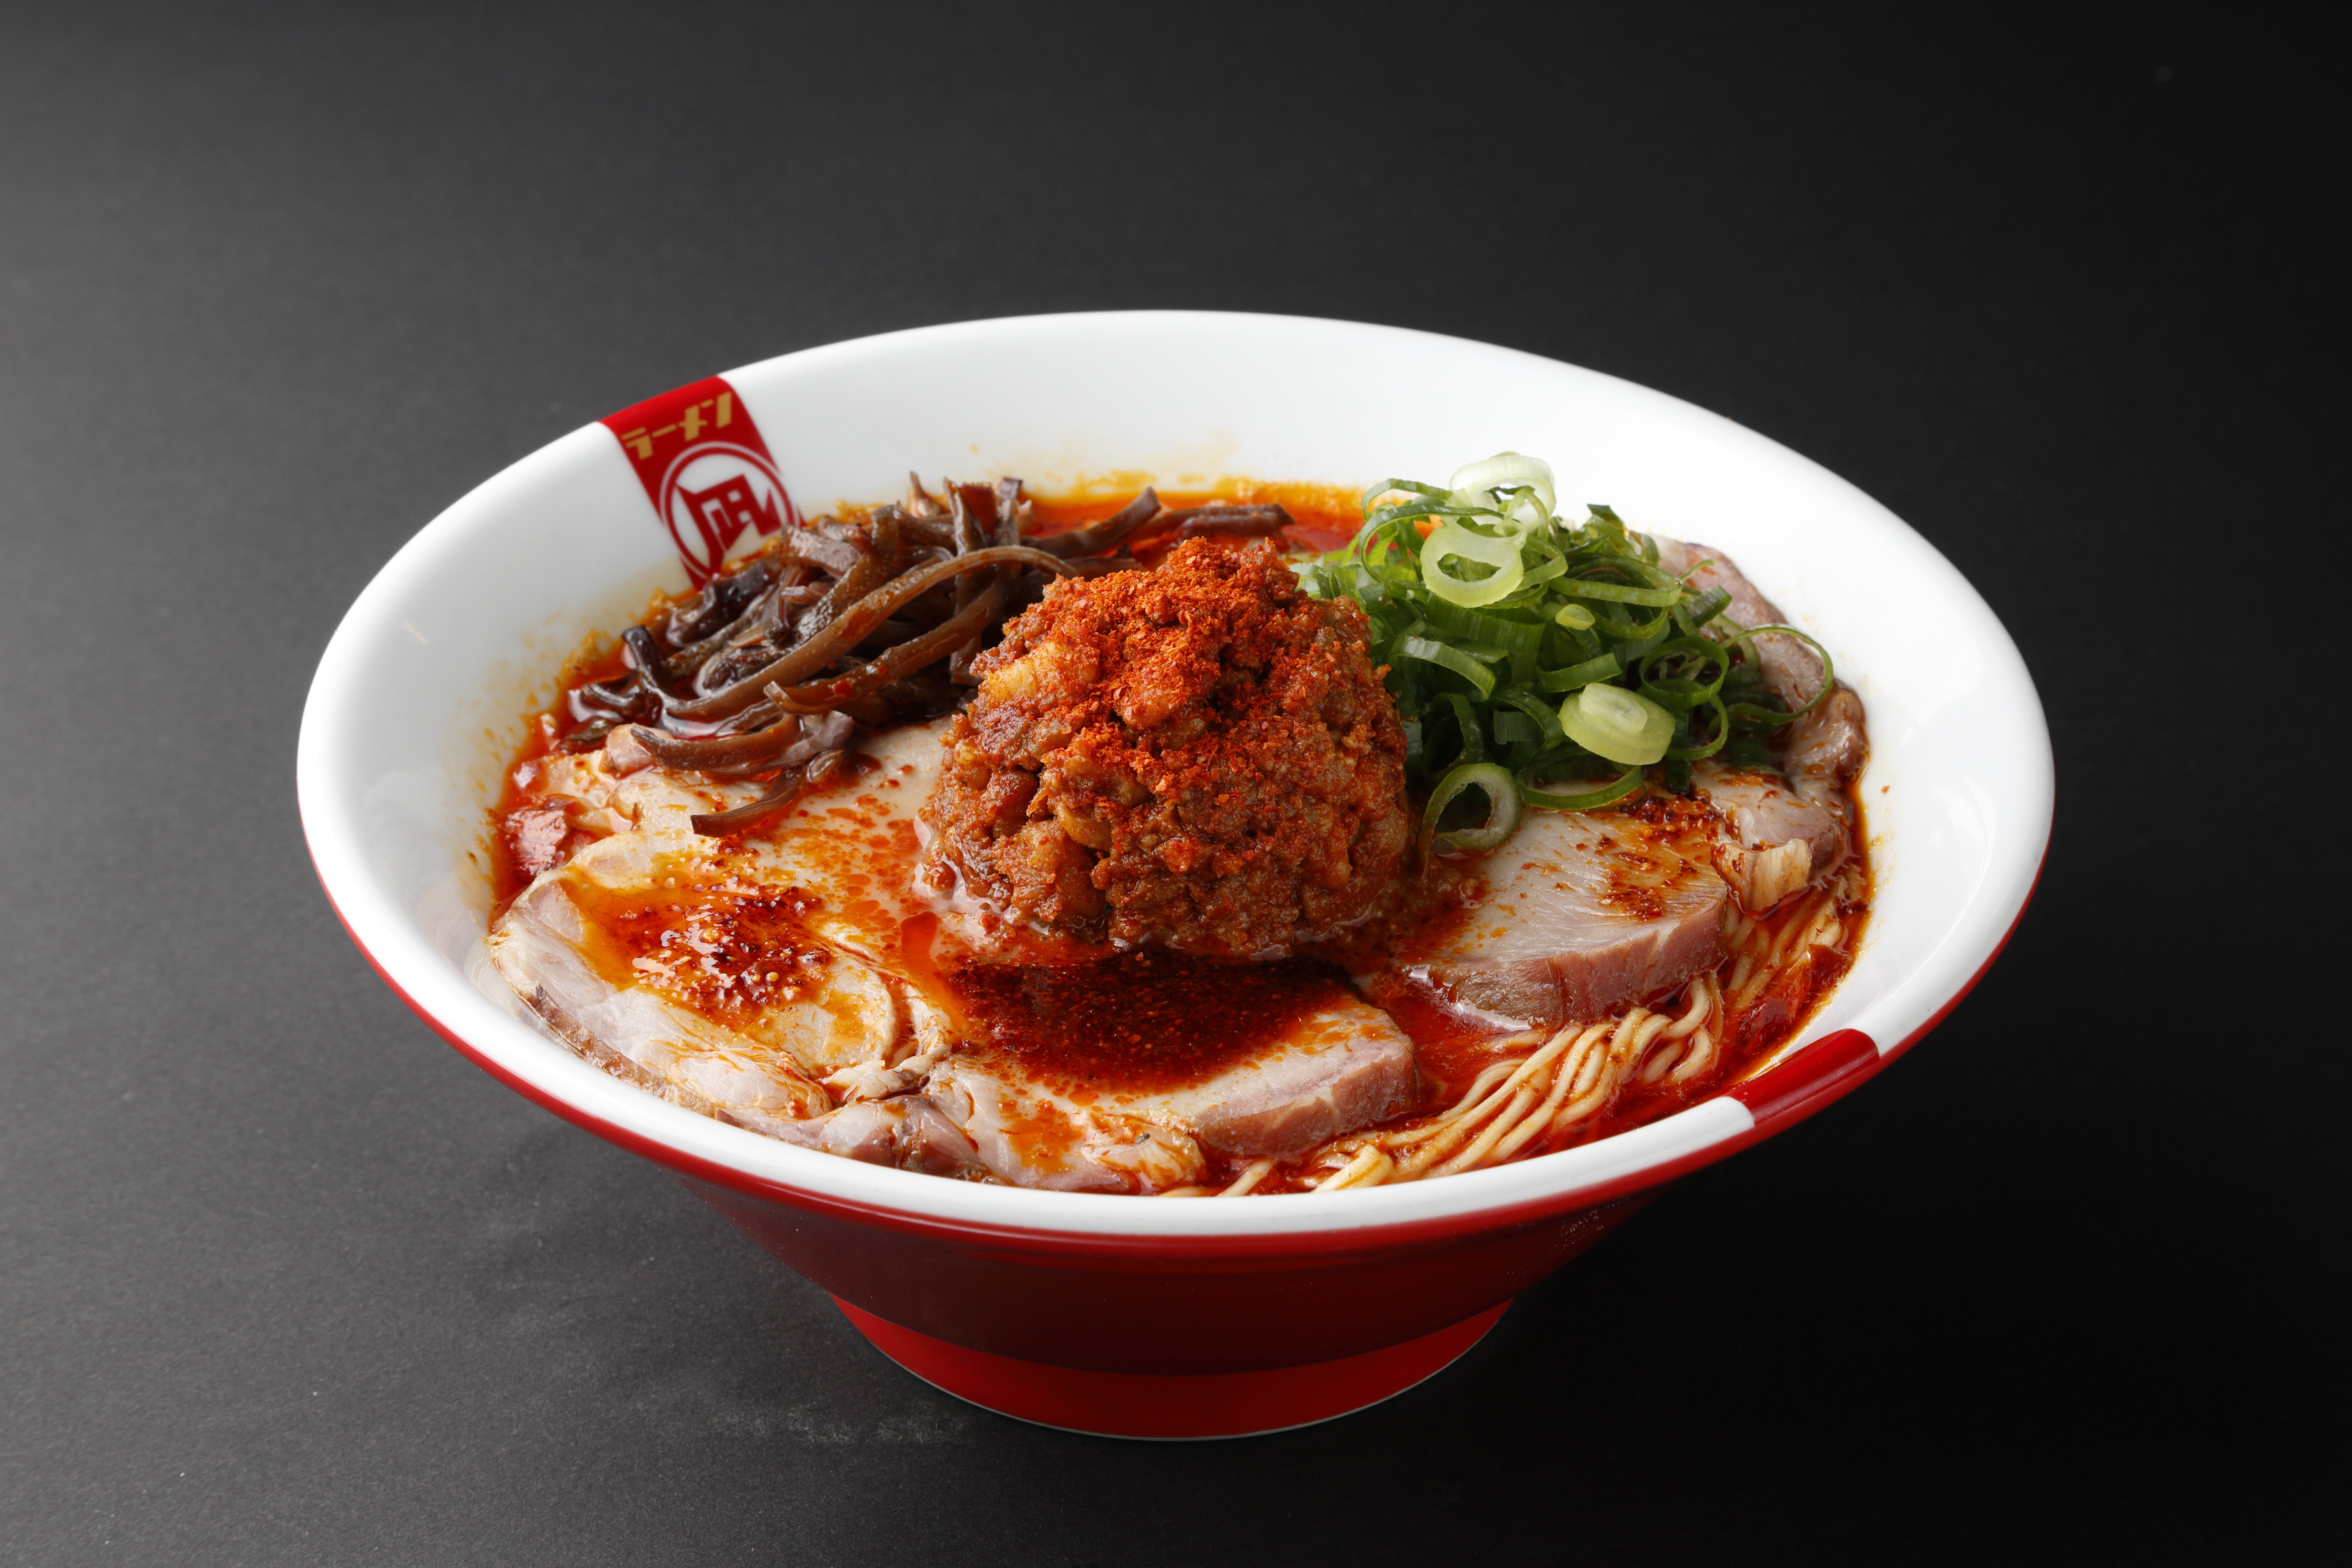 Uber Popular Japanese Ramen Chain Opens Second Bay Area Location